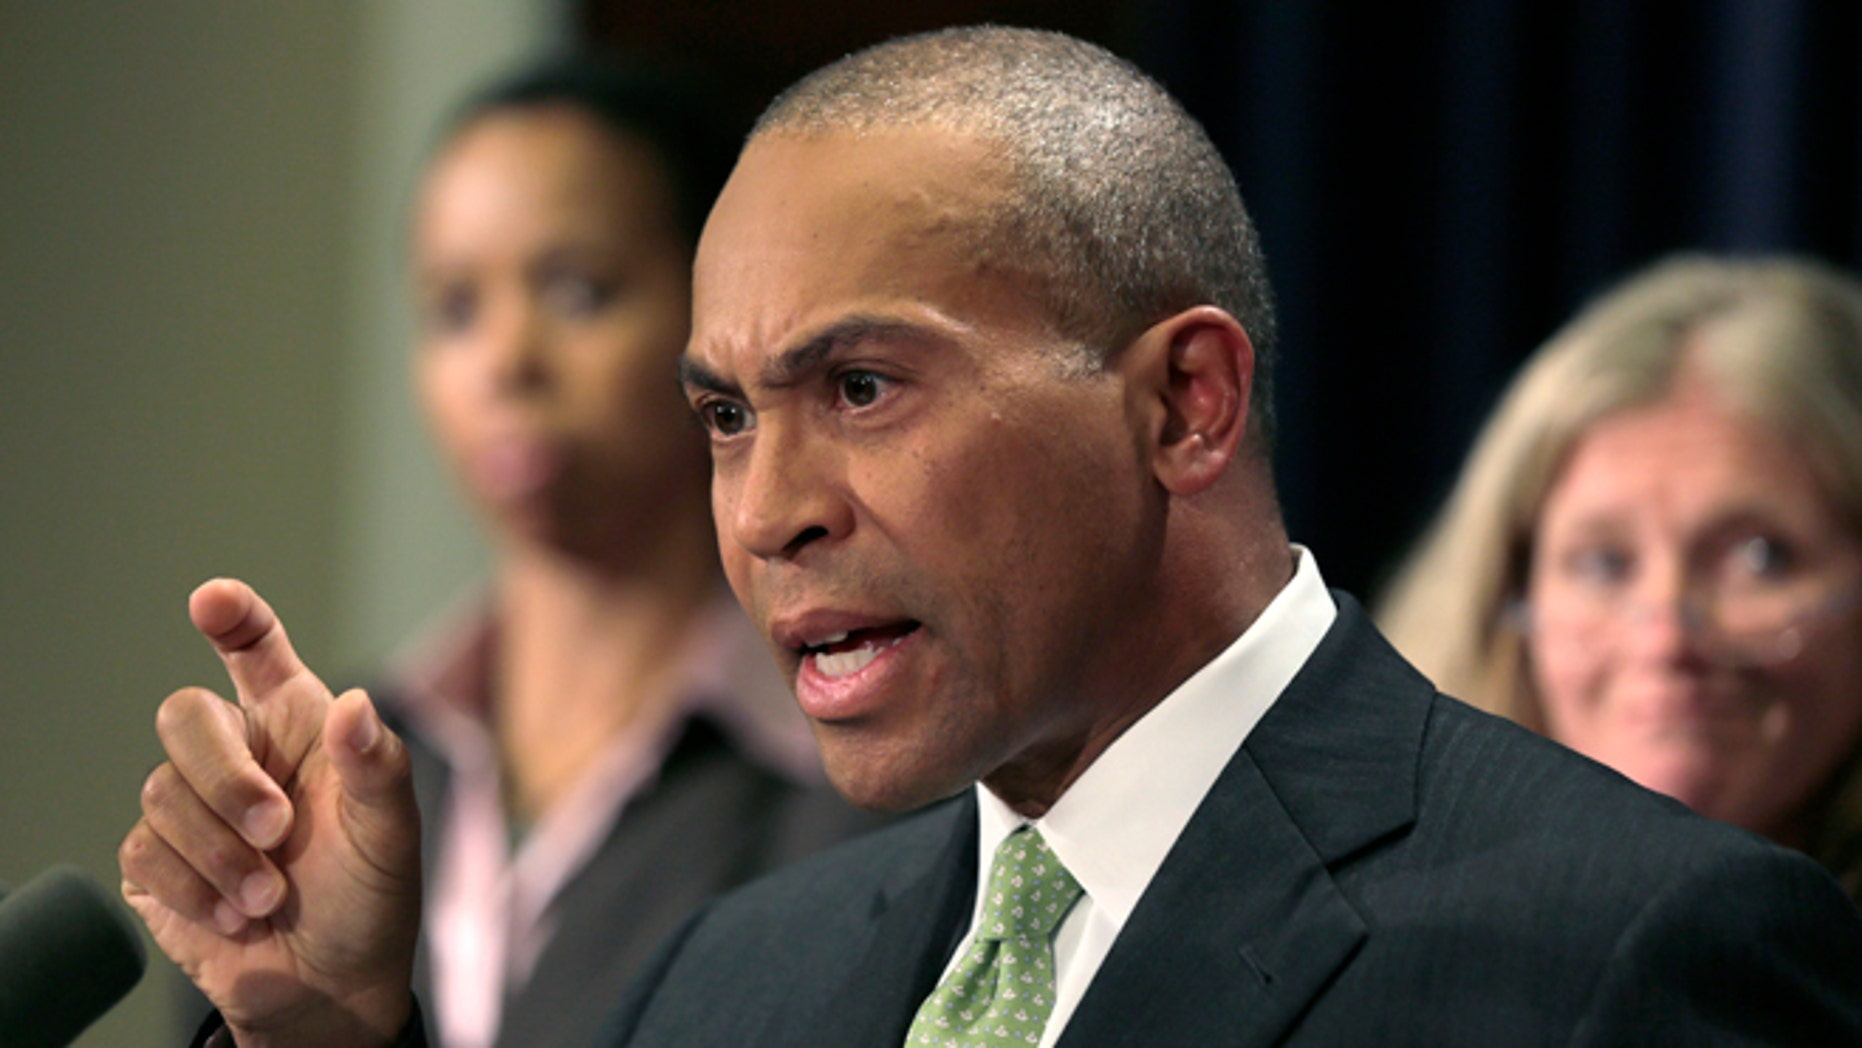 Oct. 23, 2012: Mass. Gov. Deval Patrick gestures during a news conference regarding the Massachusetts pharmacy responsible for the meningitis outbreak during a news conference at the Statehouse in Boston.